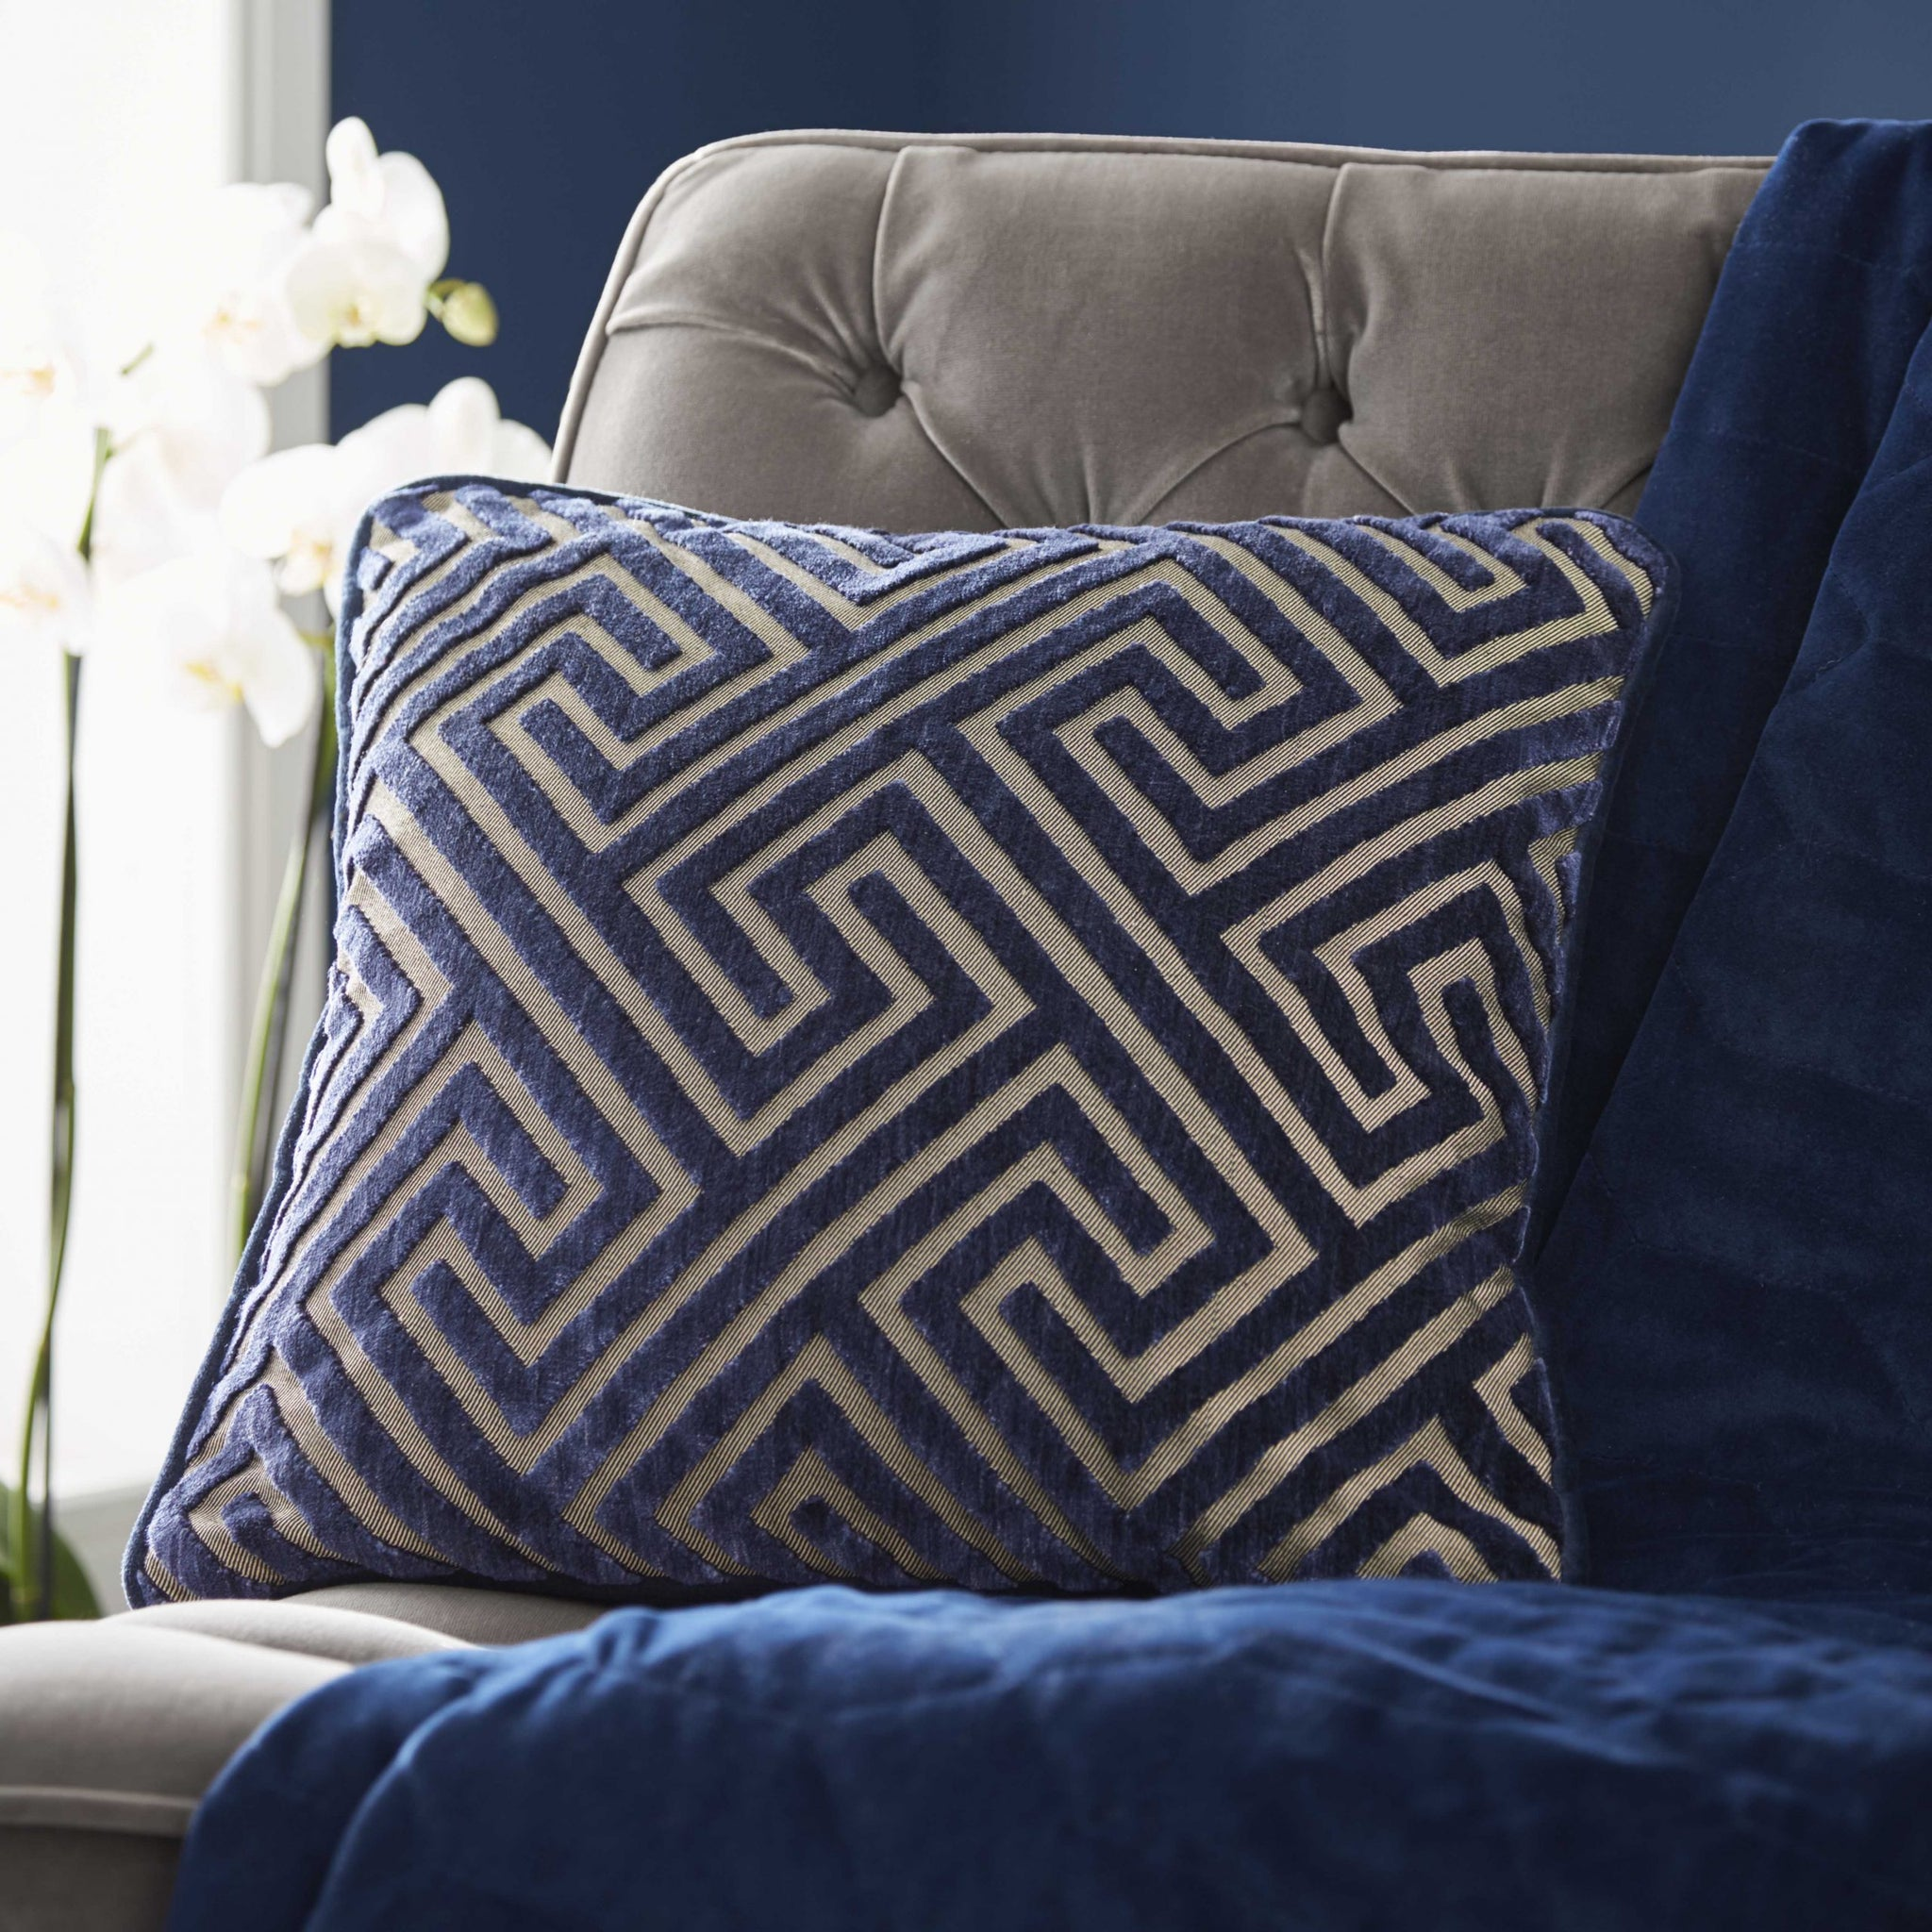 Greek Key Midnight Cushion 43x43cm